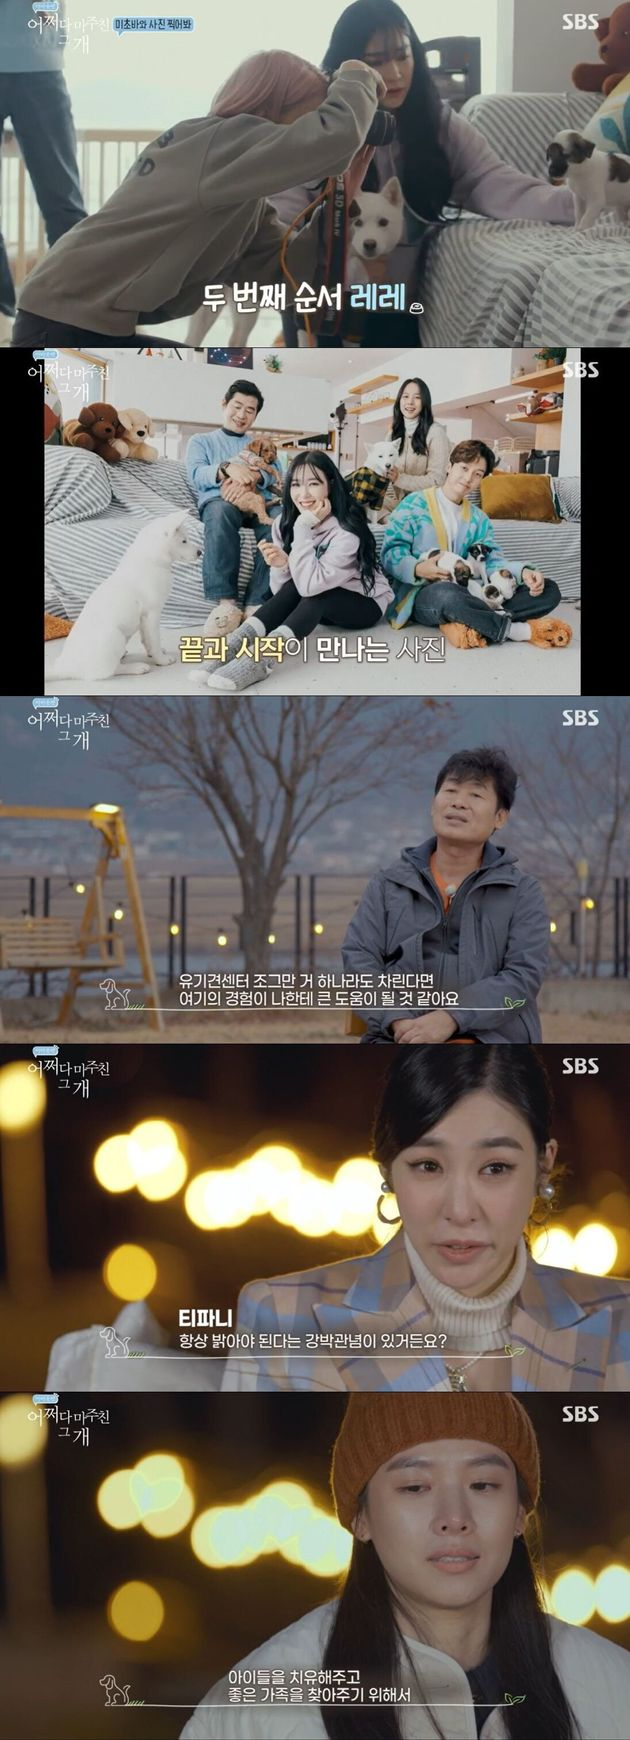 SBS'I met him by chance